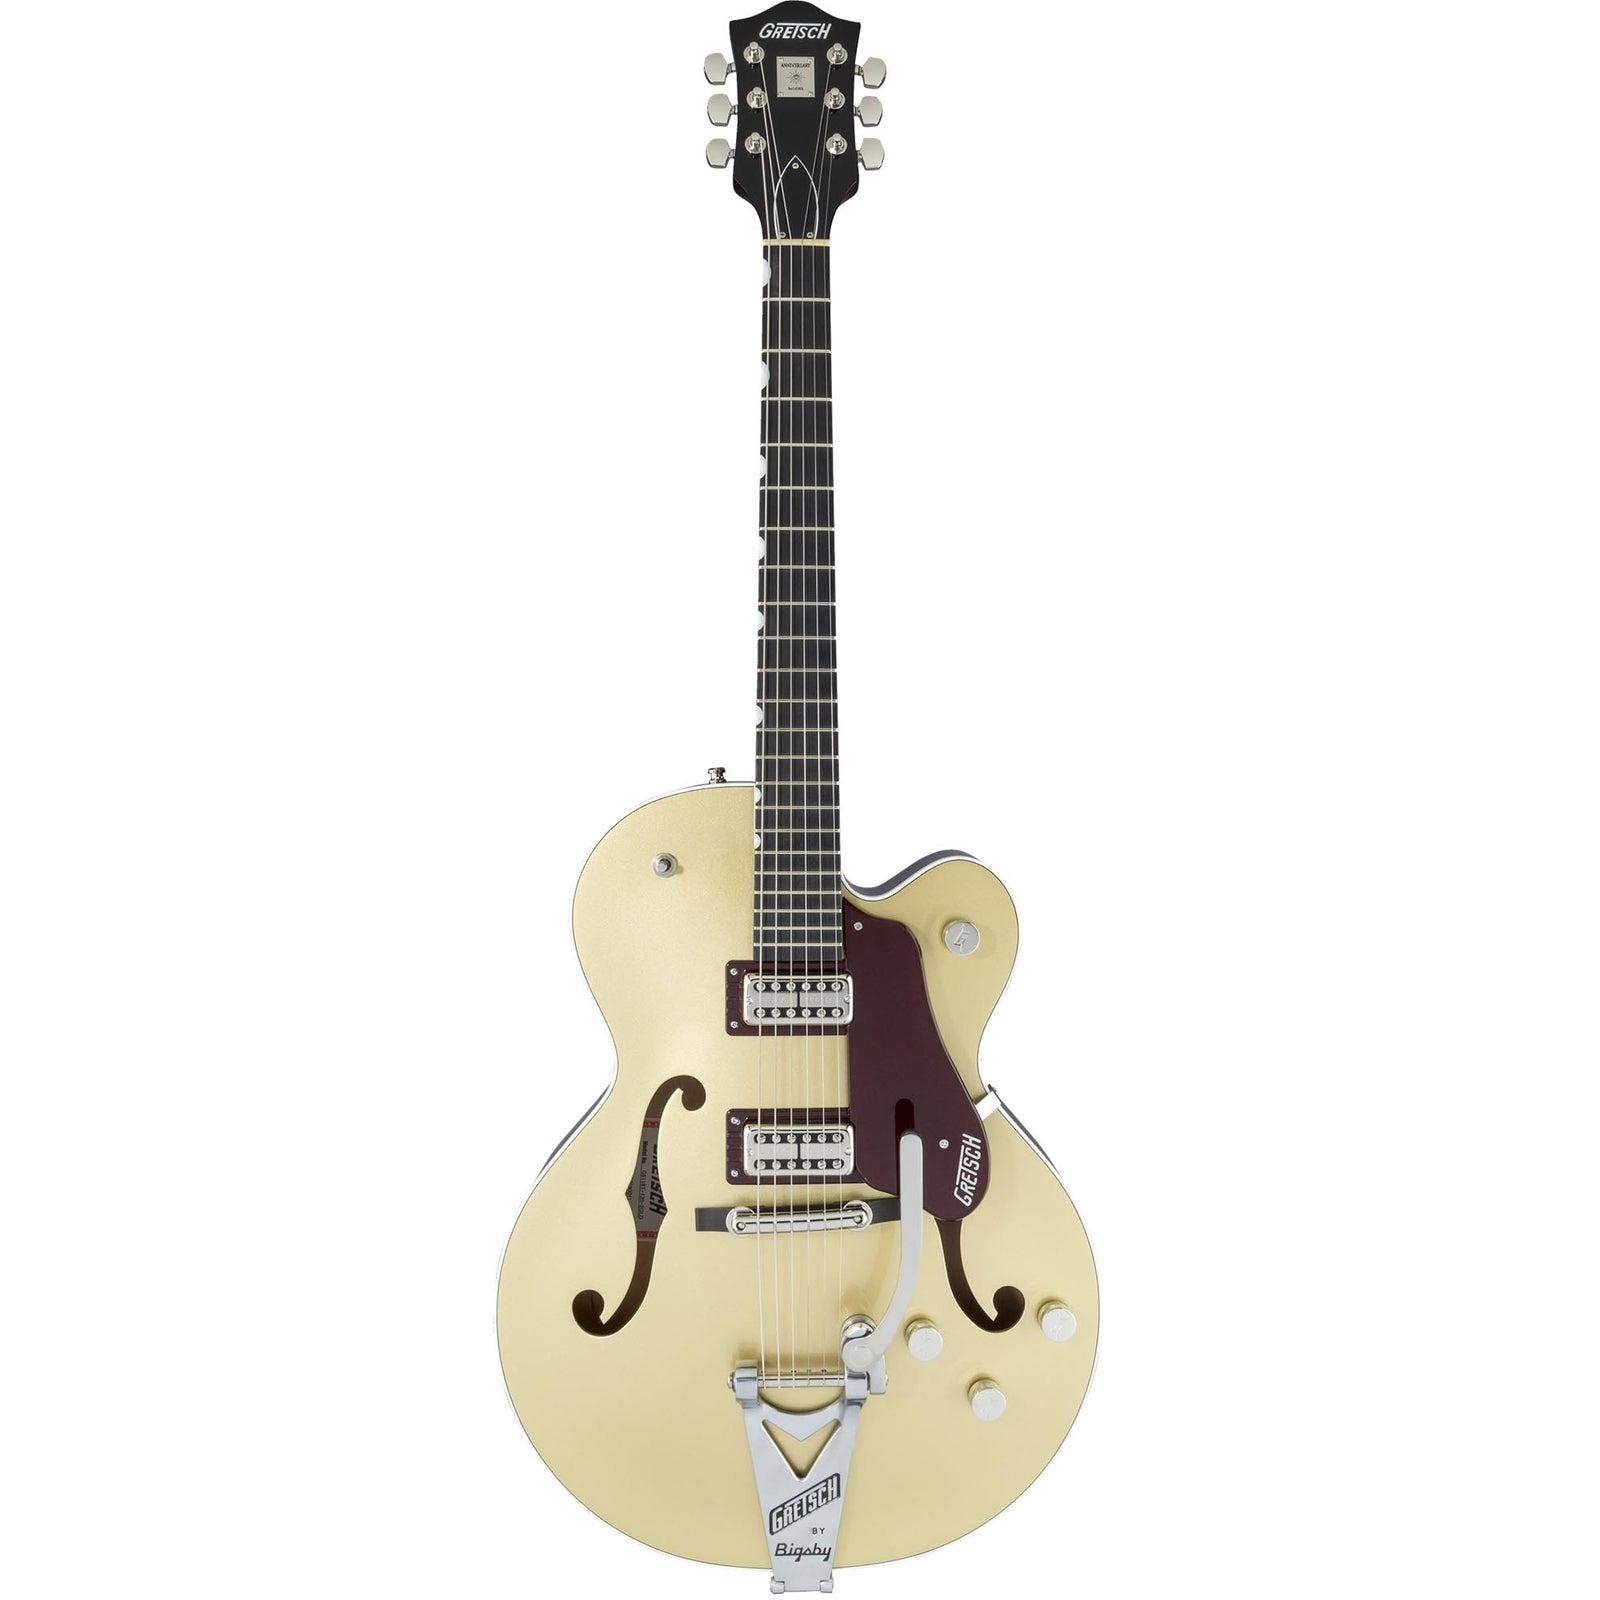 Gretsch G6118T-135 Limited 135th Anniversary With Bigsby - Ebony - 2 Tone Casino Gold/Dark Cherry Metallic